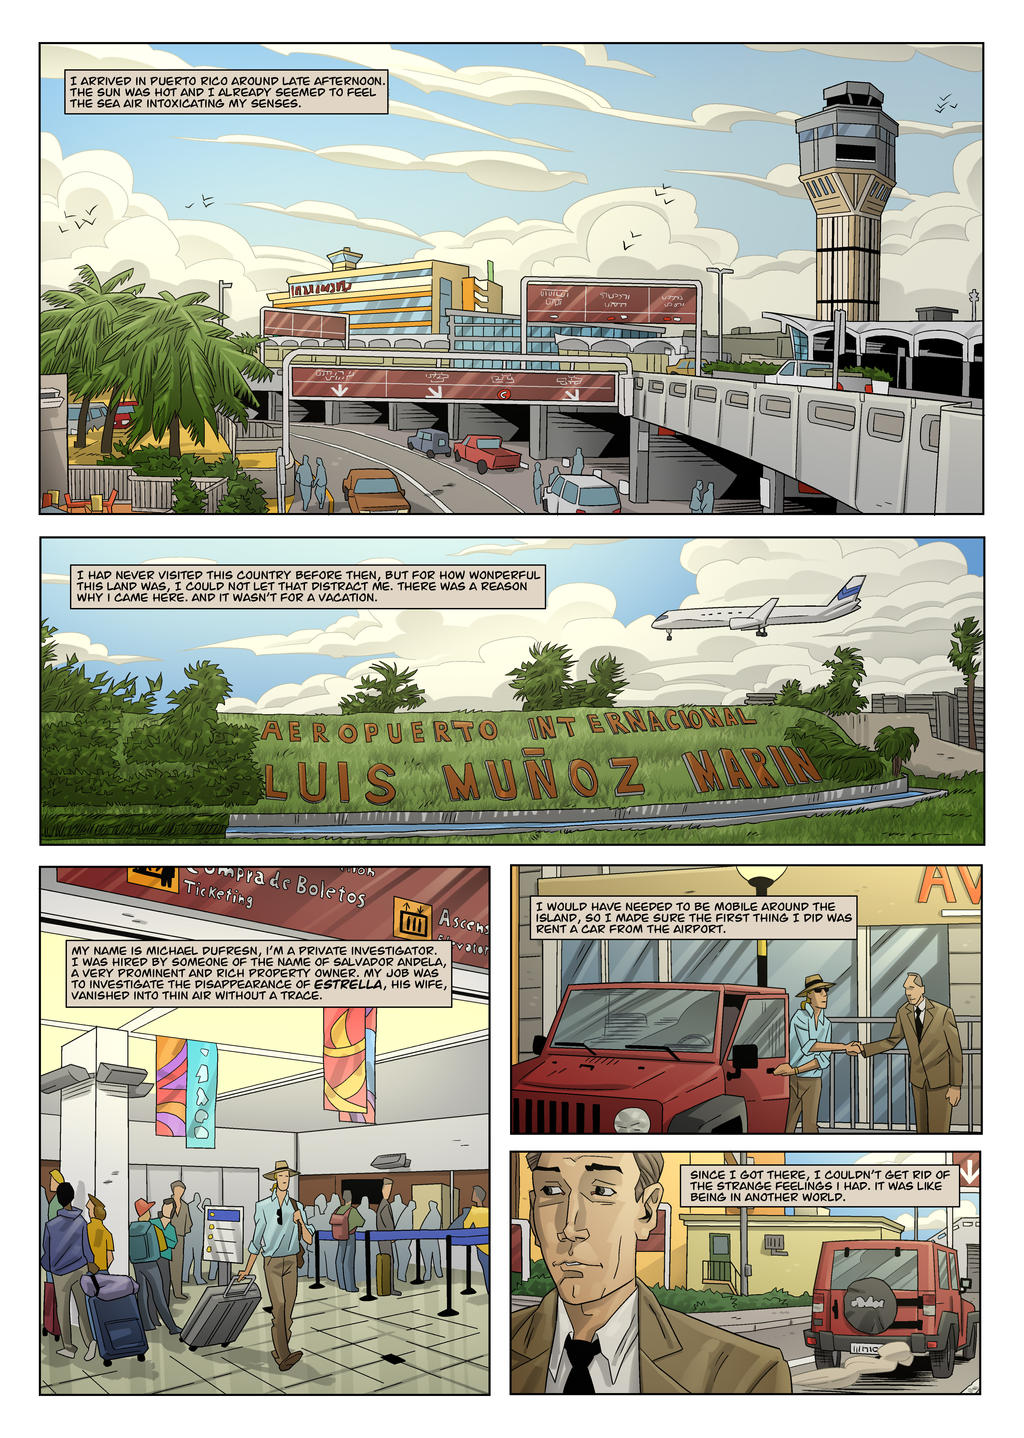 Puerto Rico - Page 1 - Final ENG by The-Real-NComics